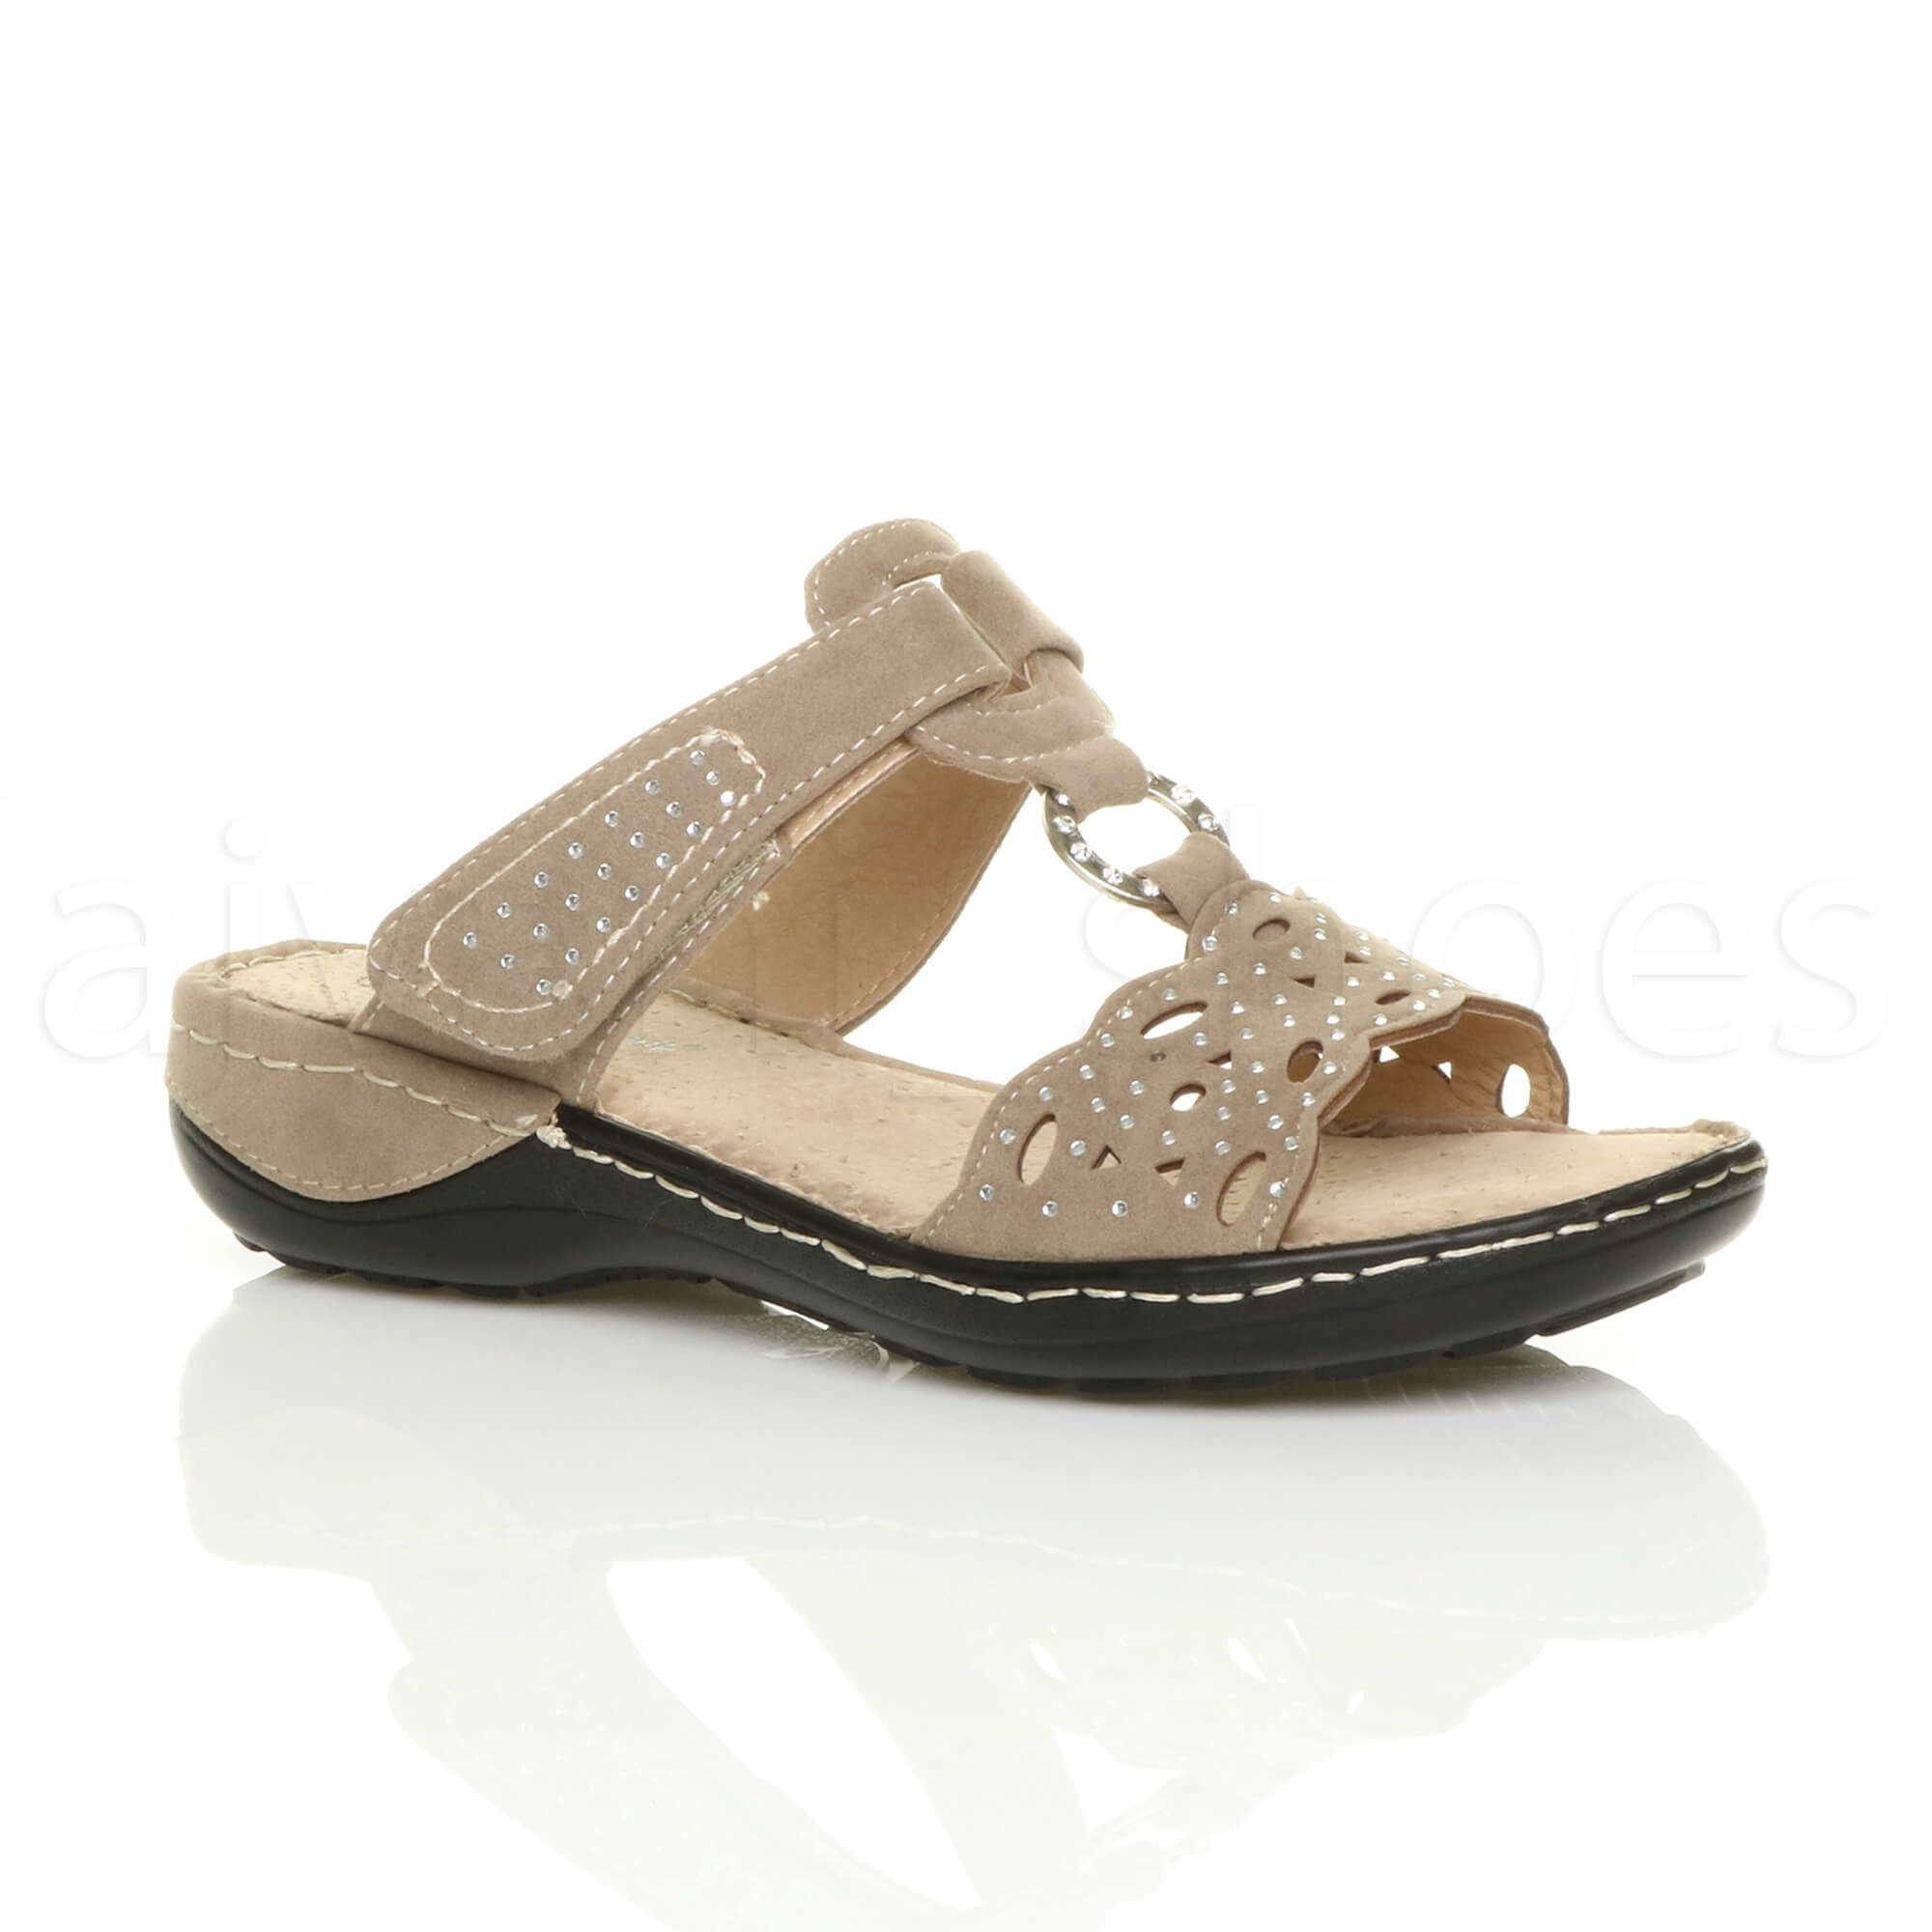 WOMENS-LADIES-LOW-MID-WEDGE-HEEL-COMFORT-PADDED-DIAMANTE-T-BAR-SANDALS-SIZE